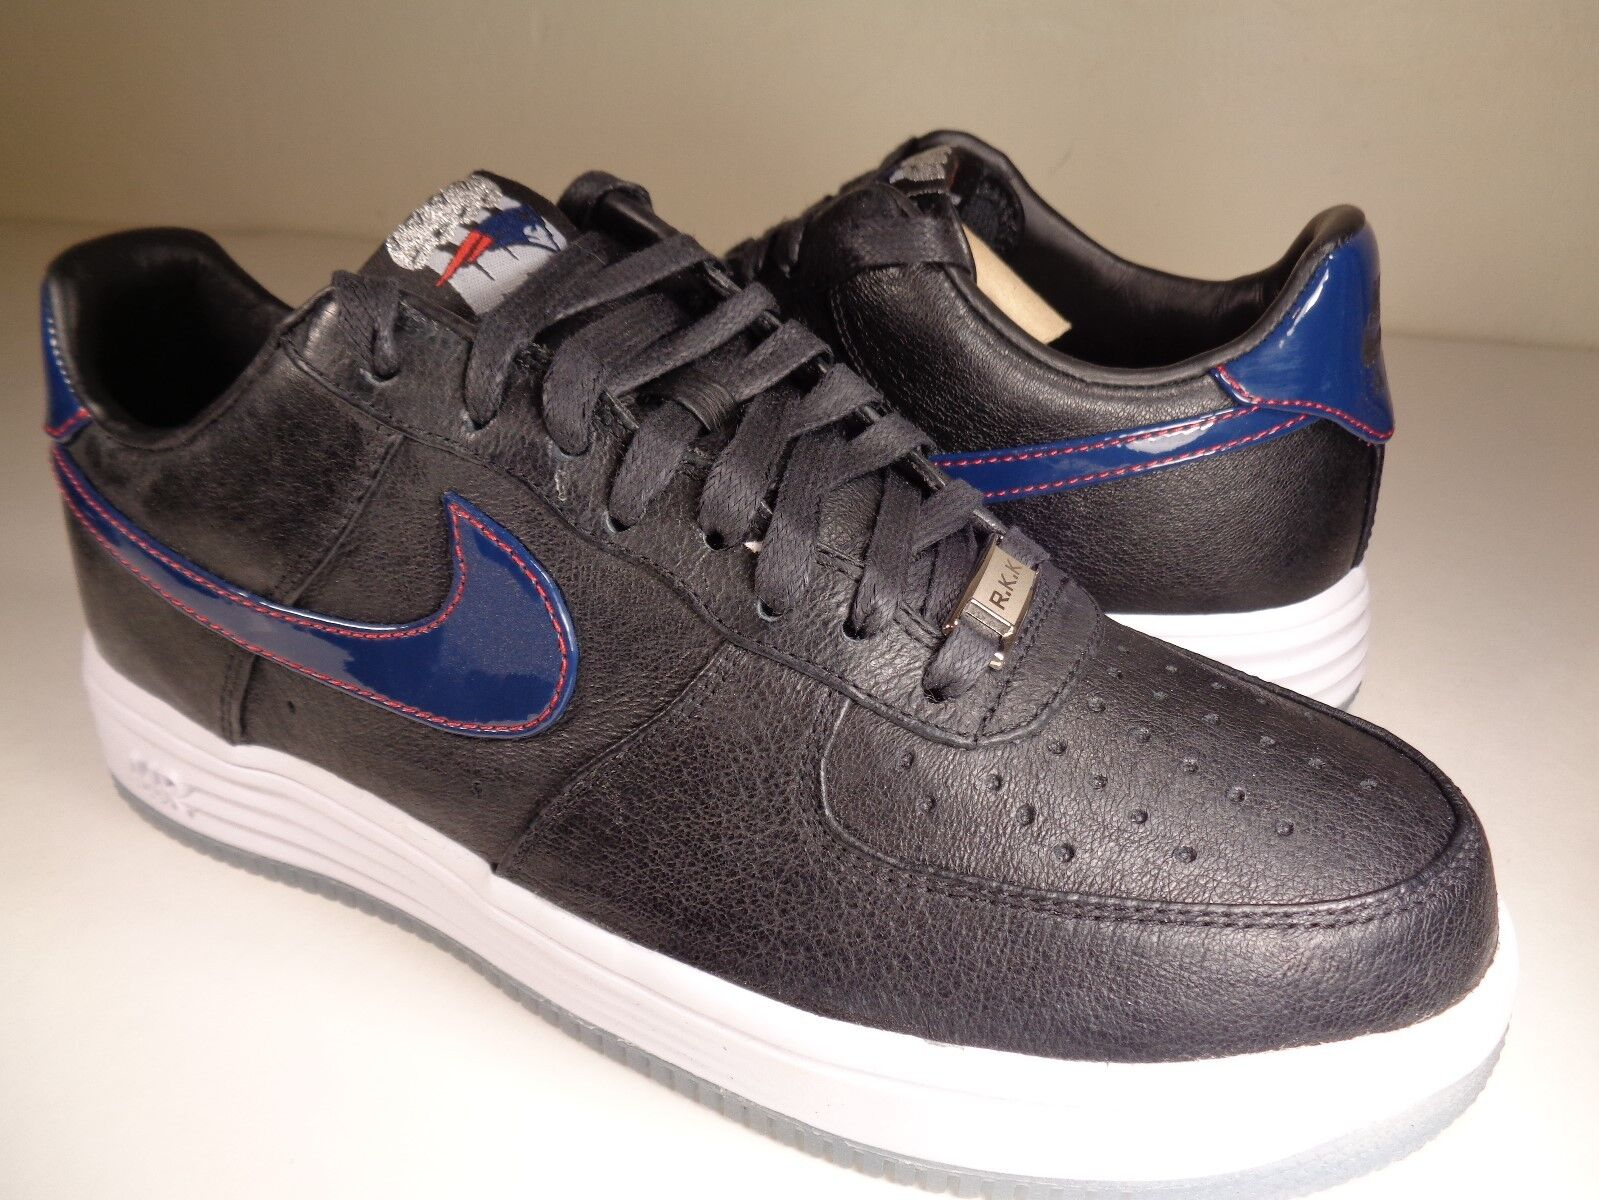 Nike Lunar Force 1 1 1 PF QS nero Patriots Navy Robert Kraft SZ 7.5 (836341-001) e9c9a2